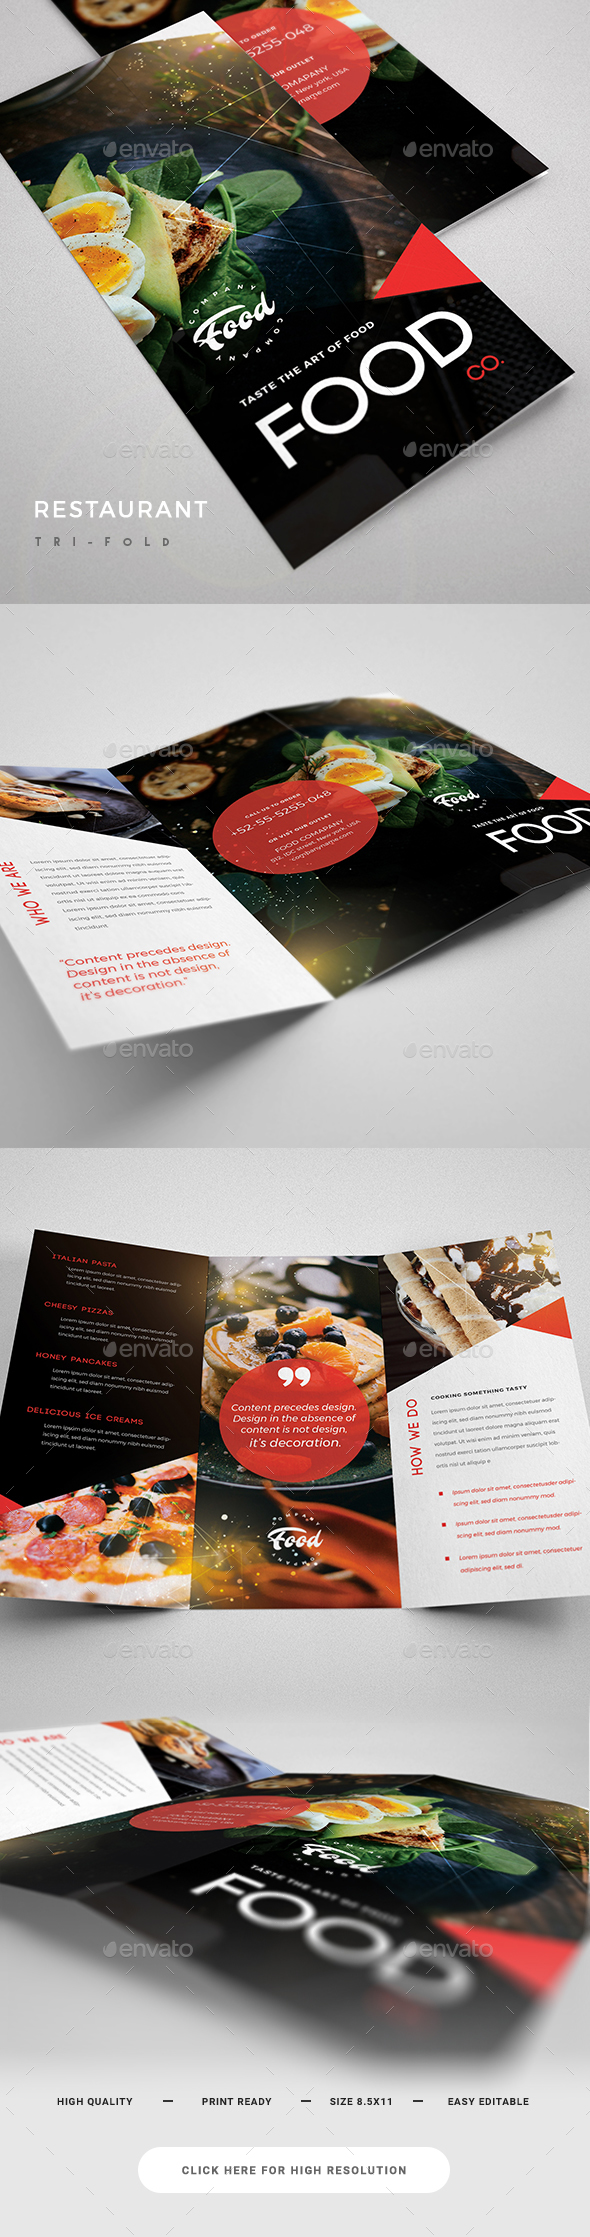 Restaurant Trifold - Brochures Print Templates